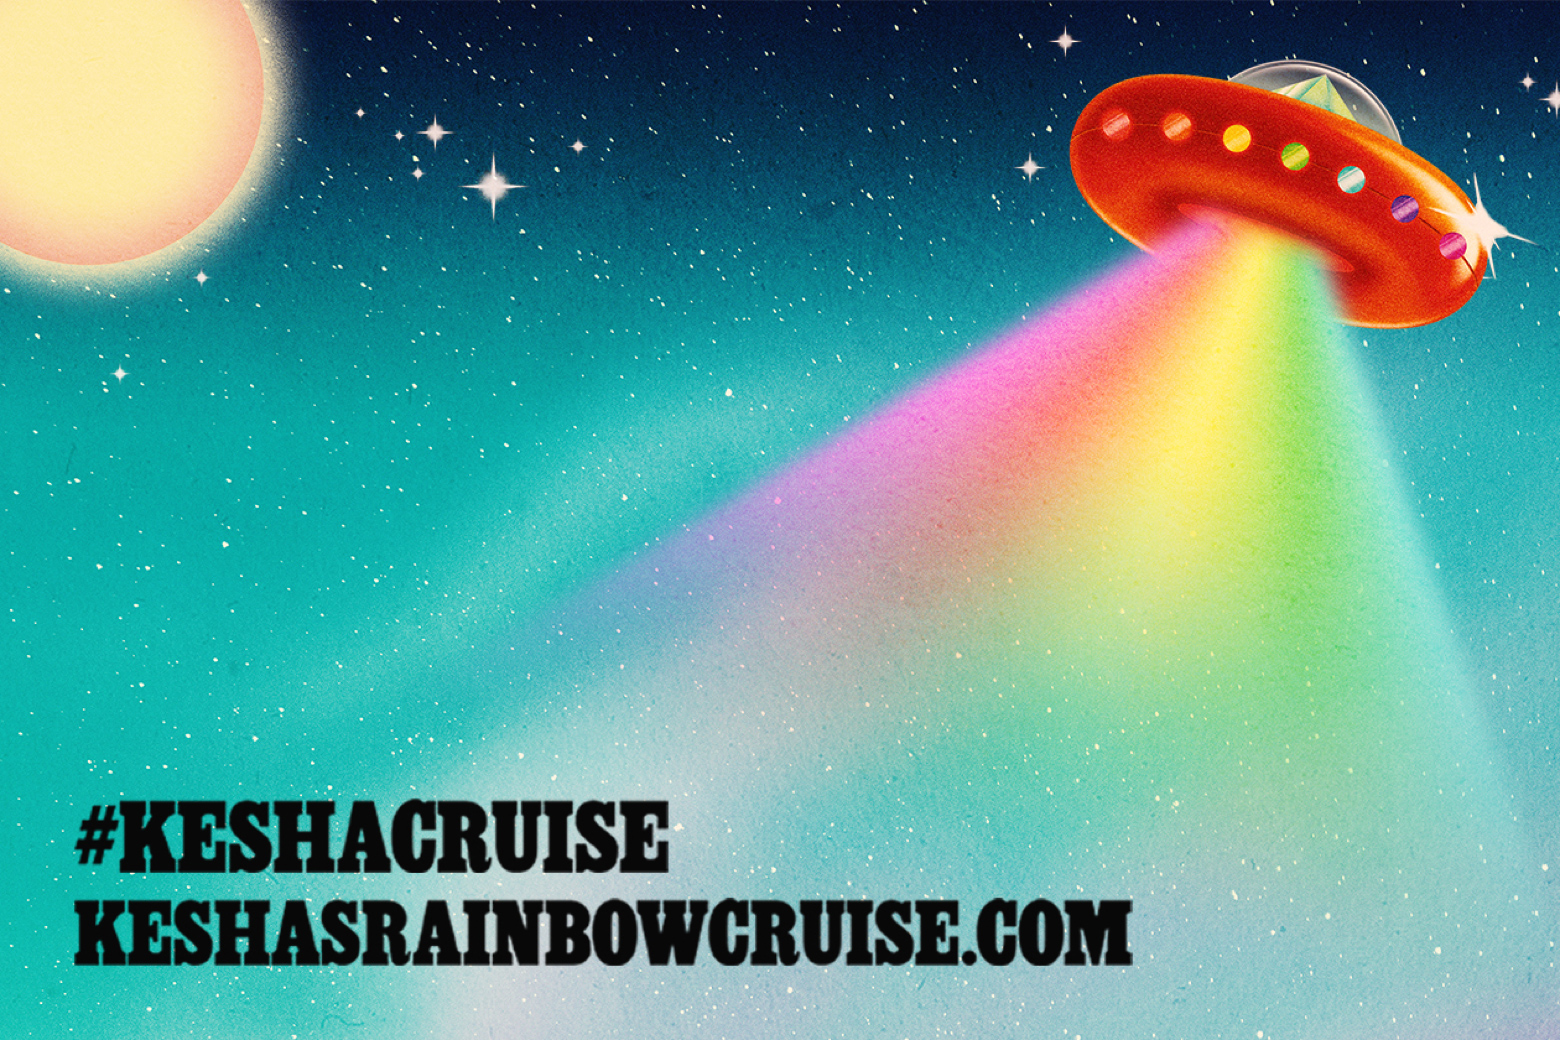 #KeshaCruise keshas rainbow cruise dot com